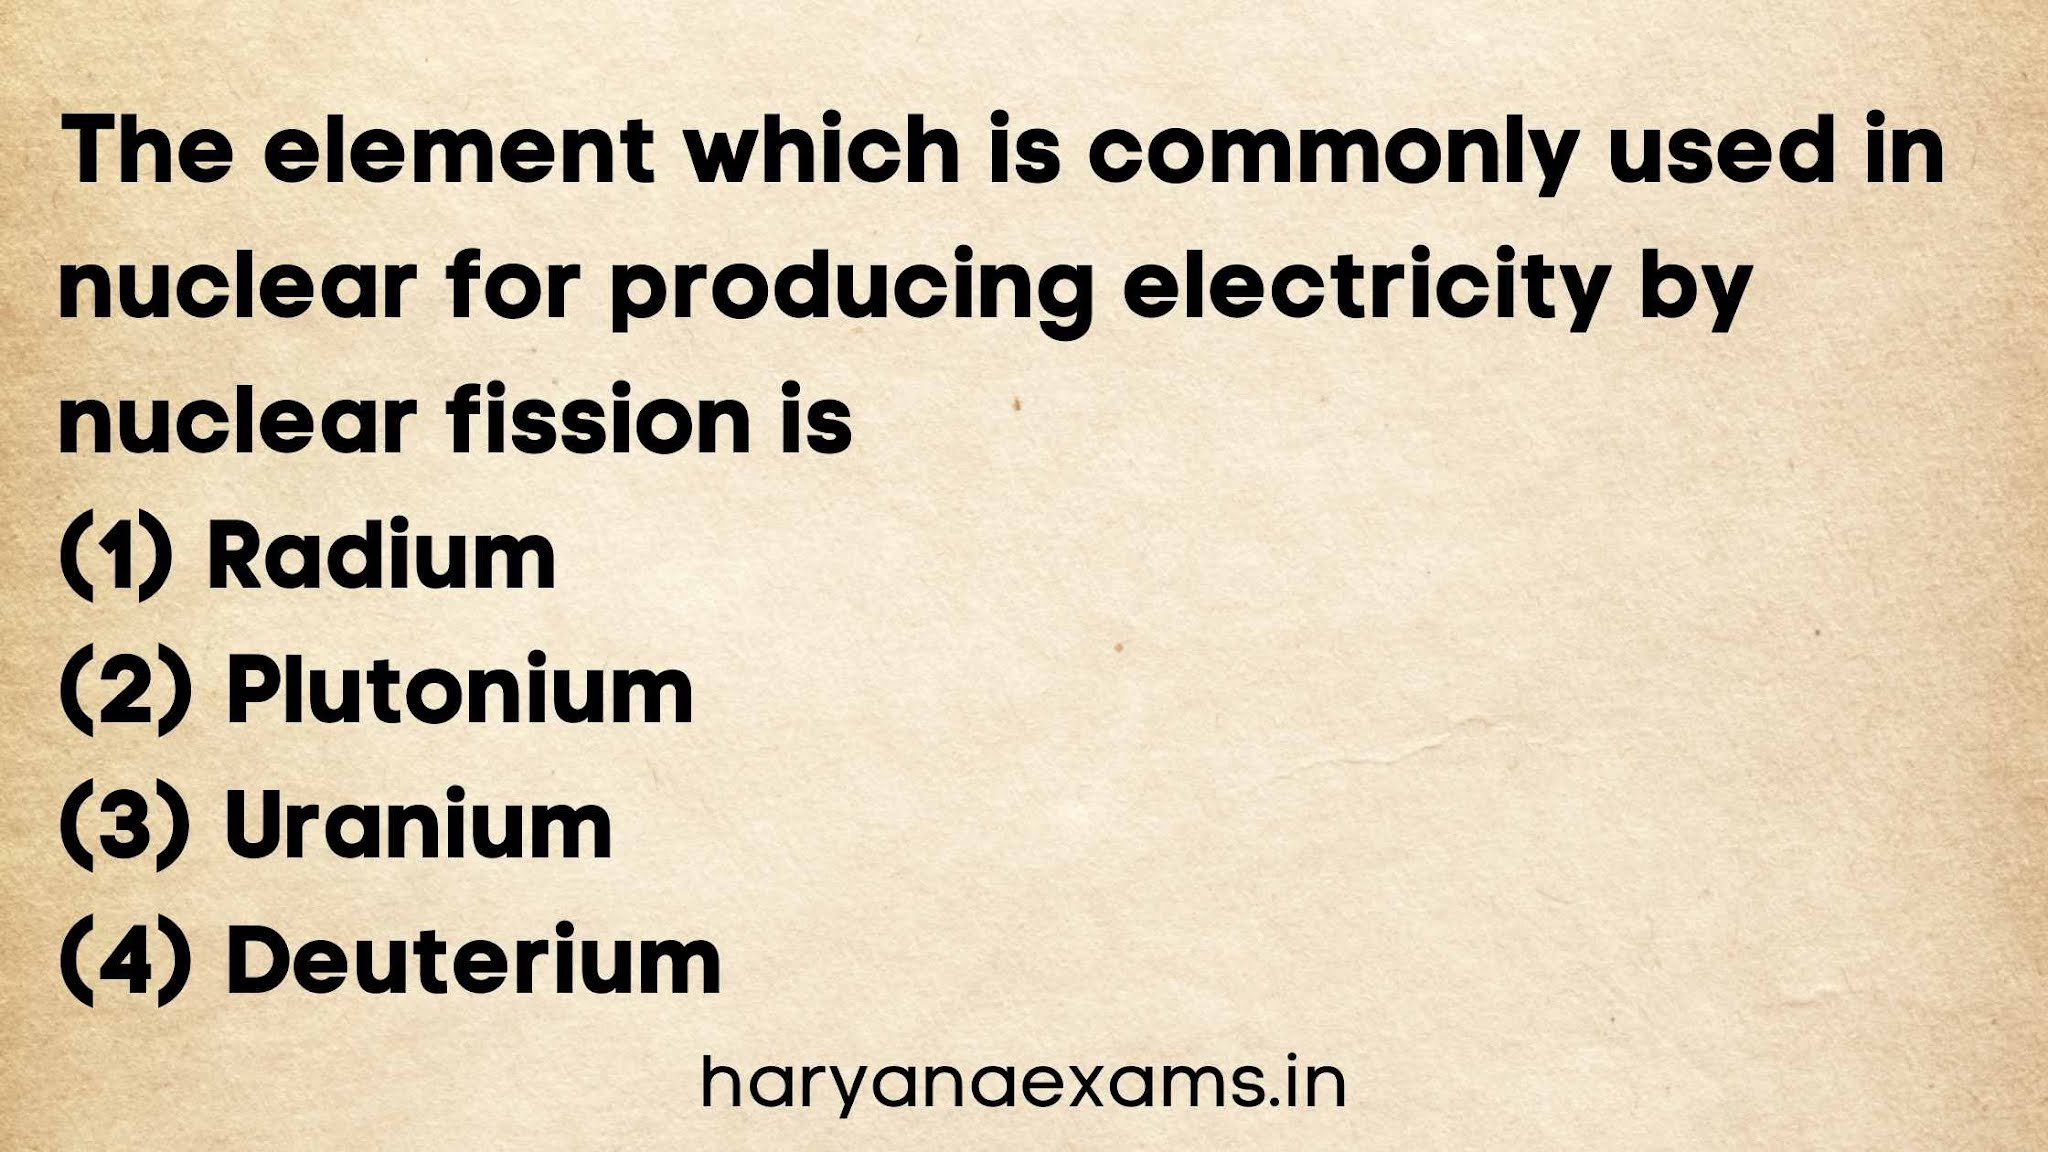 The element which is commonly used in nuclear for producing electricity by nuclear fission is   (1) Radium   (2) Plutonium   (3) Uranium   (4) Deuterium